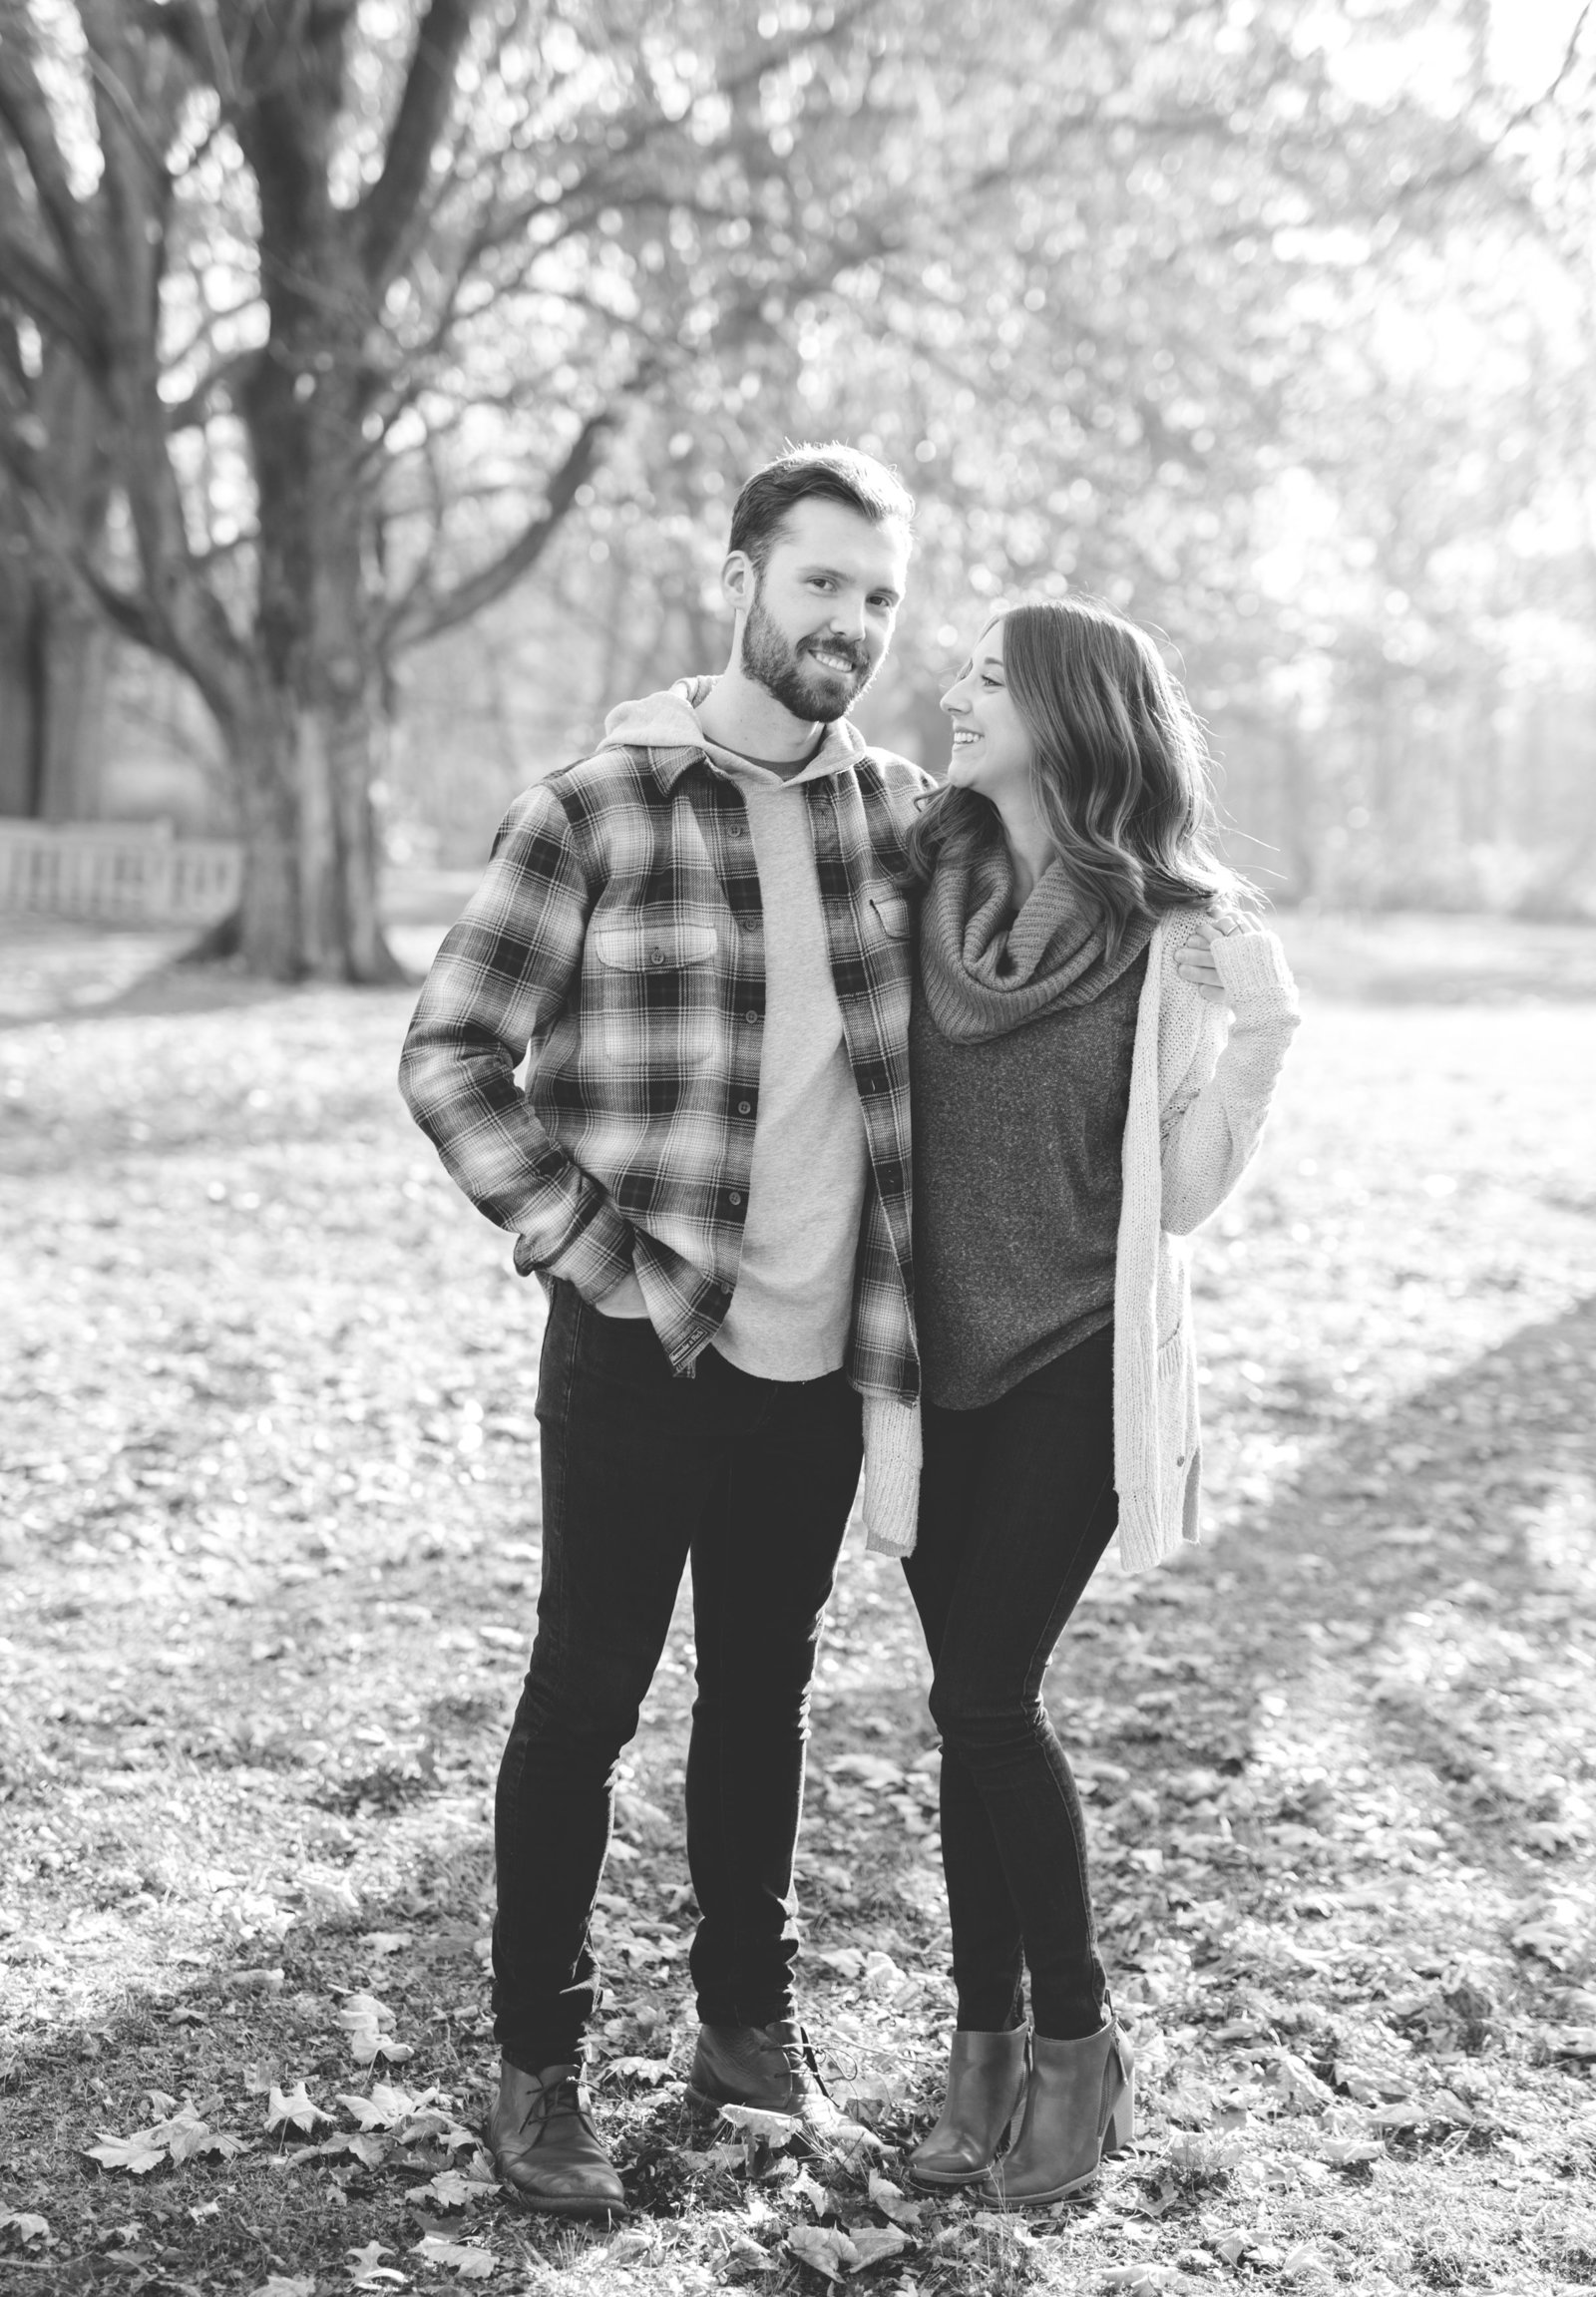 downtown-cleveland-engagement-session-allison-ewing-photography-029-1